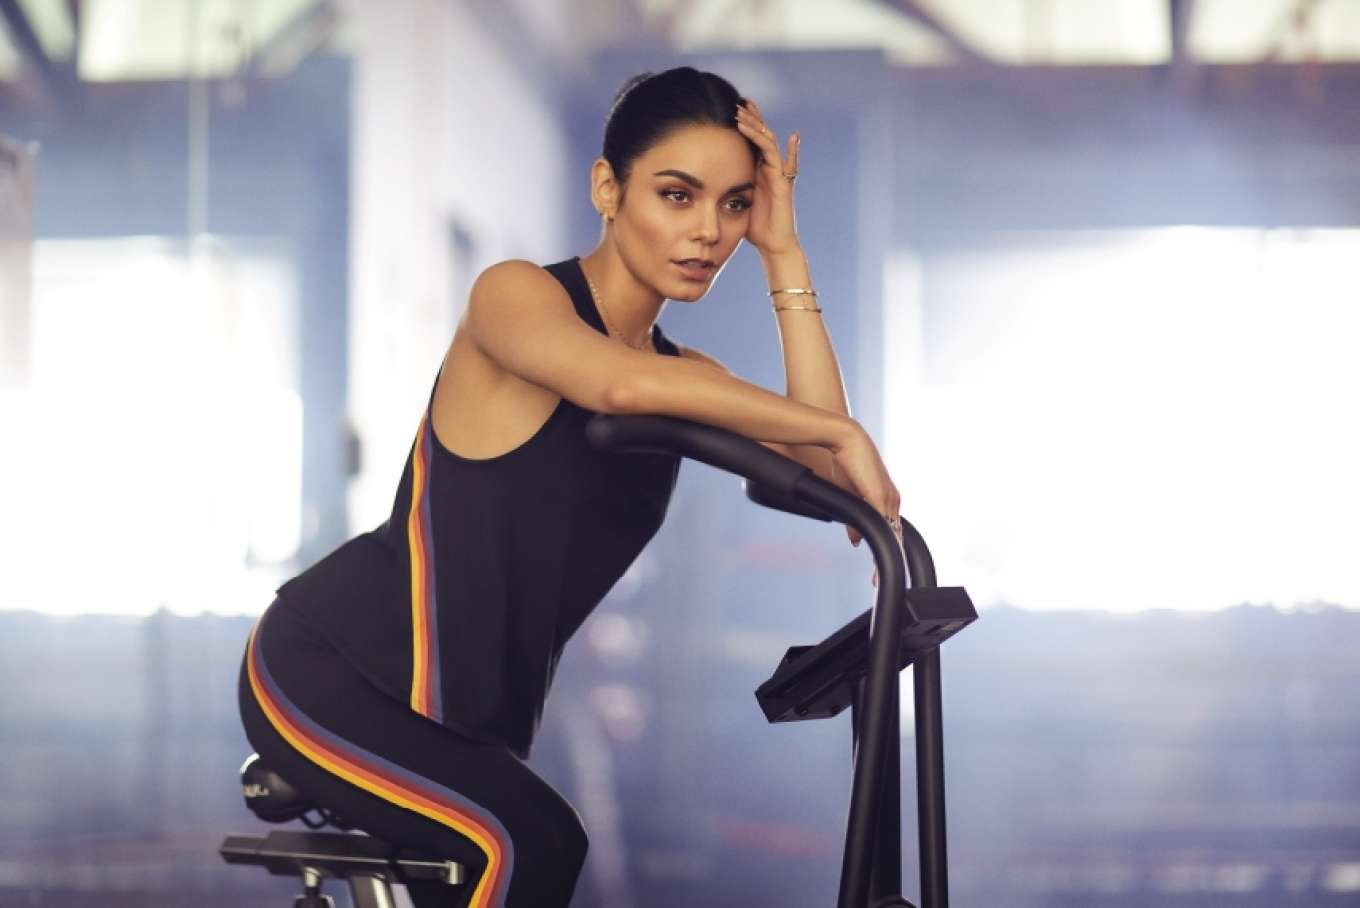 Vanessa Hudgens 2019 : Vanessa Hudgens – Vanessa Hudgens Collection x Avia Fitness 2019-11